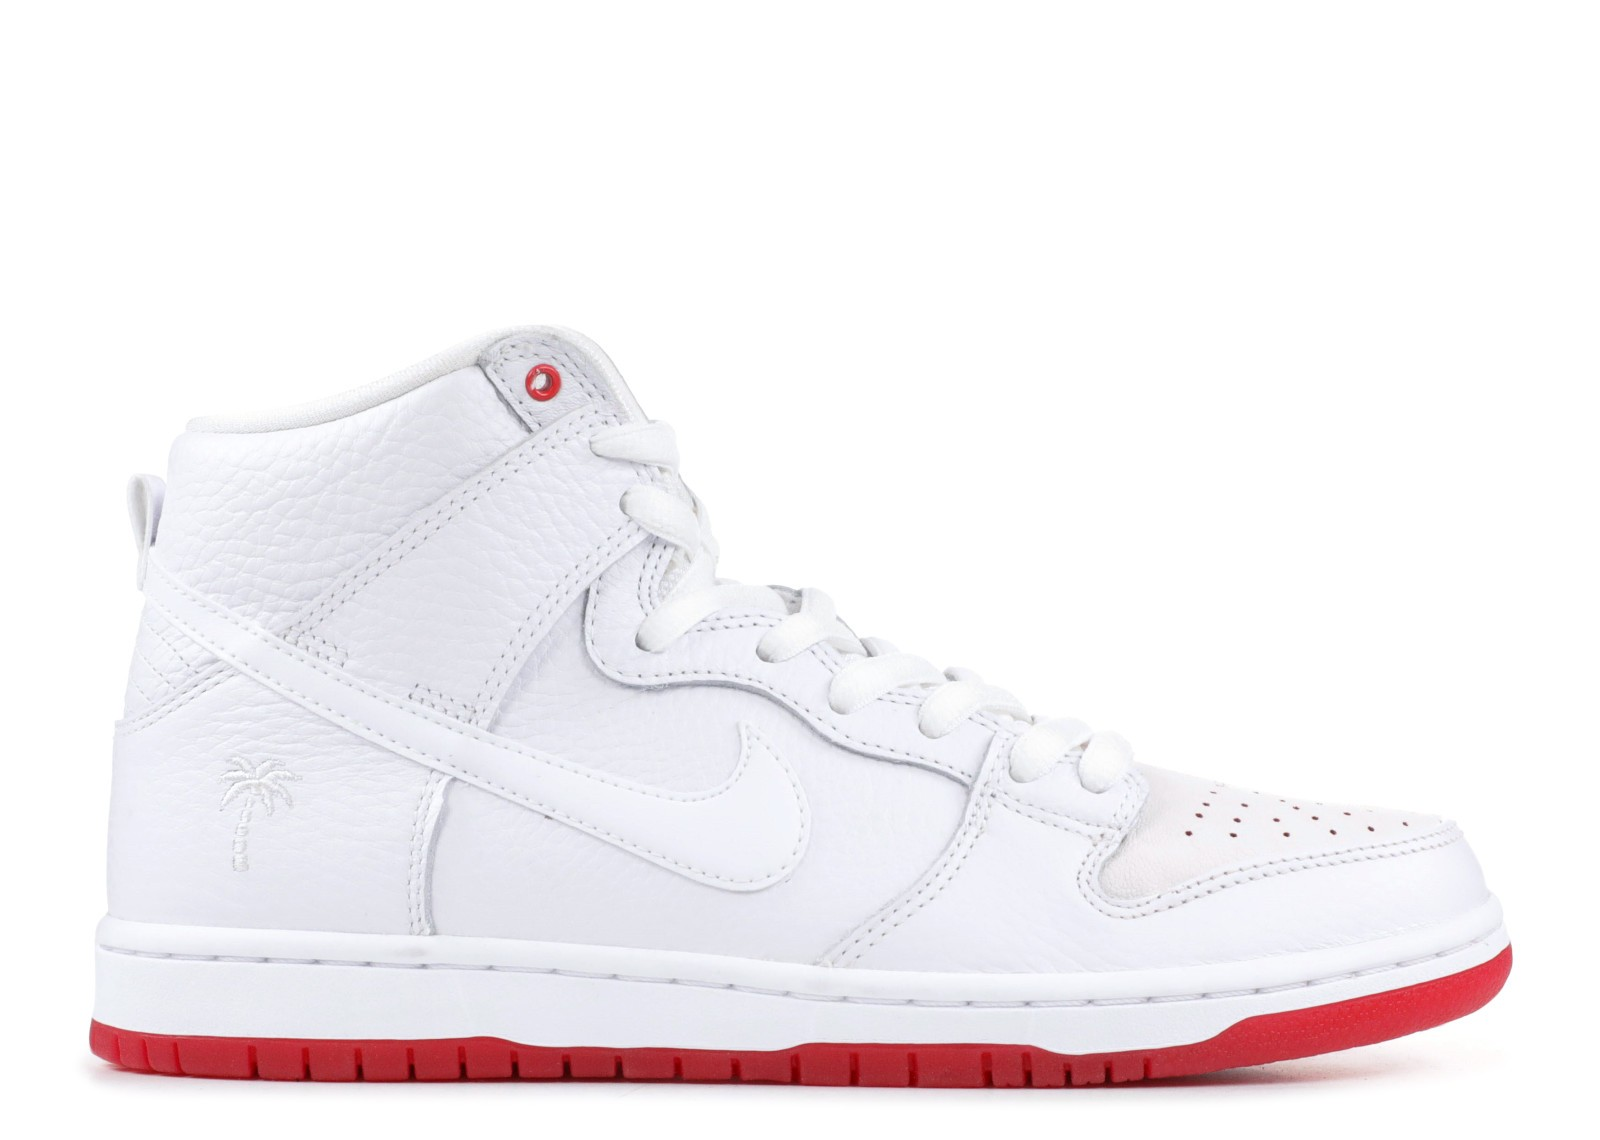 best service b0d38 358aa Prev Nike Sb Zoom Dunk High Pro Qs Kevin Bradley White University Red  AH9613-116. Zoom